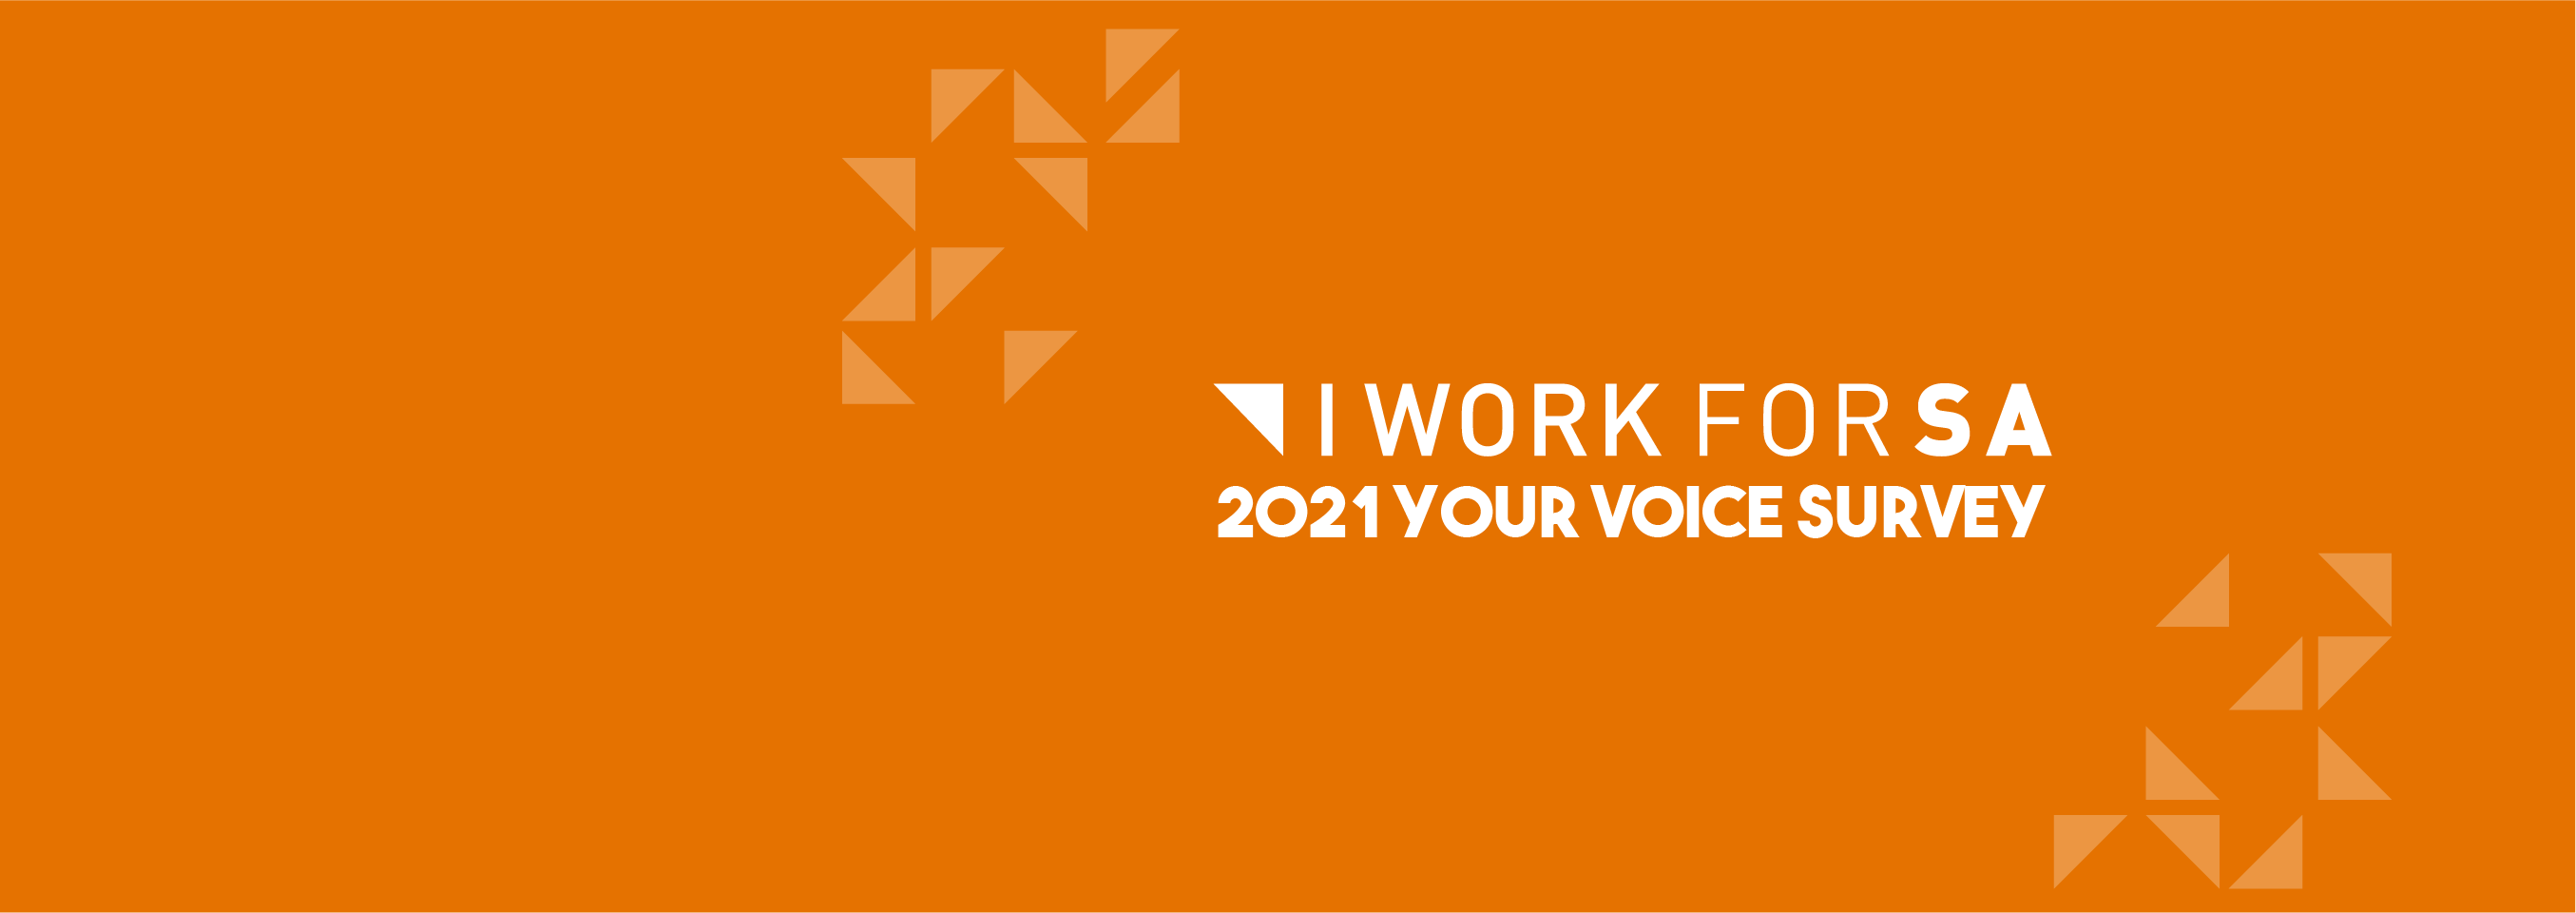 I WORK FOR SA - Your Voice Survey